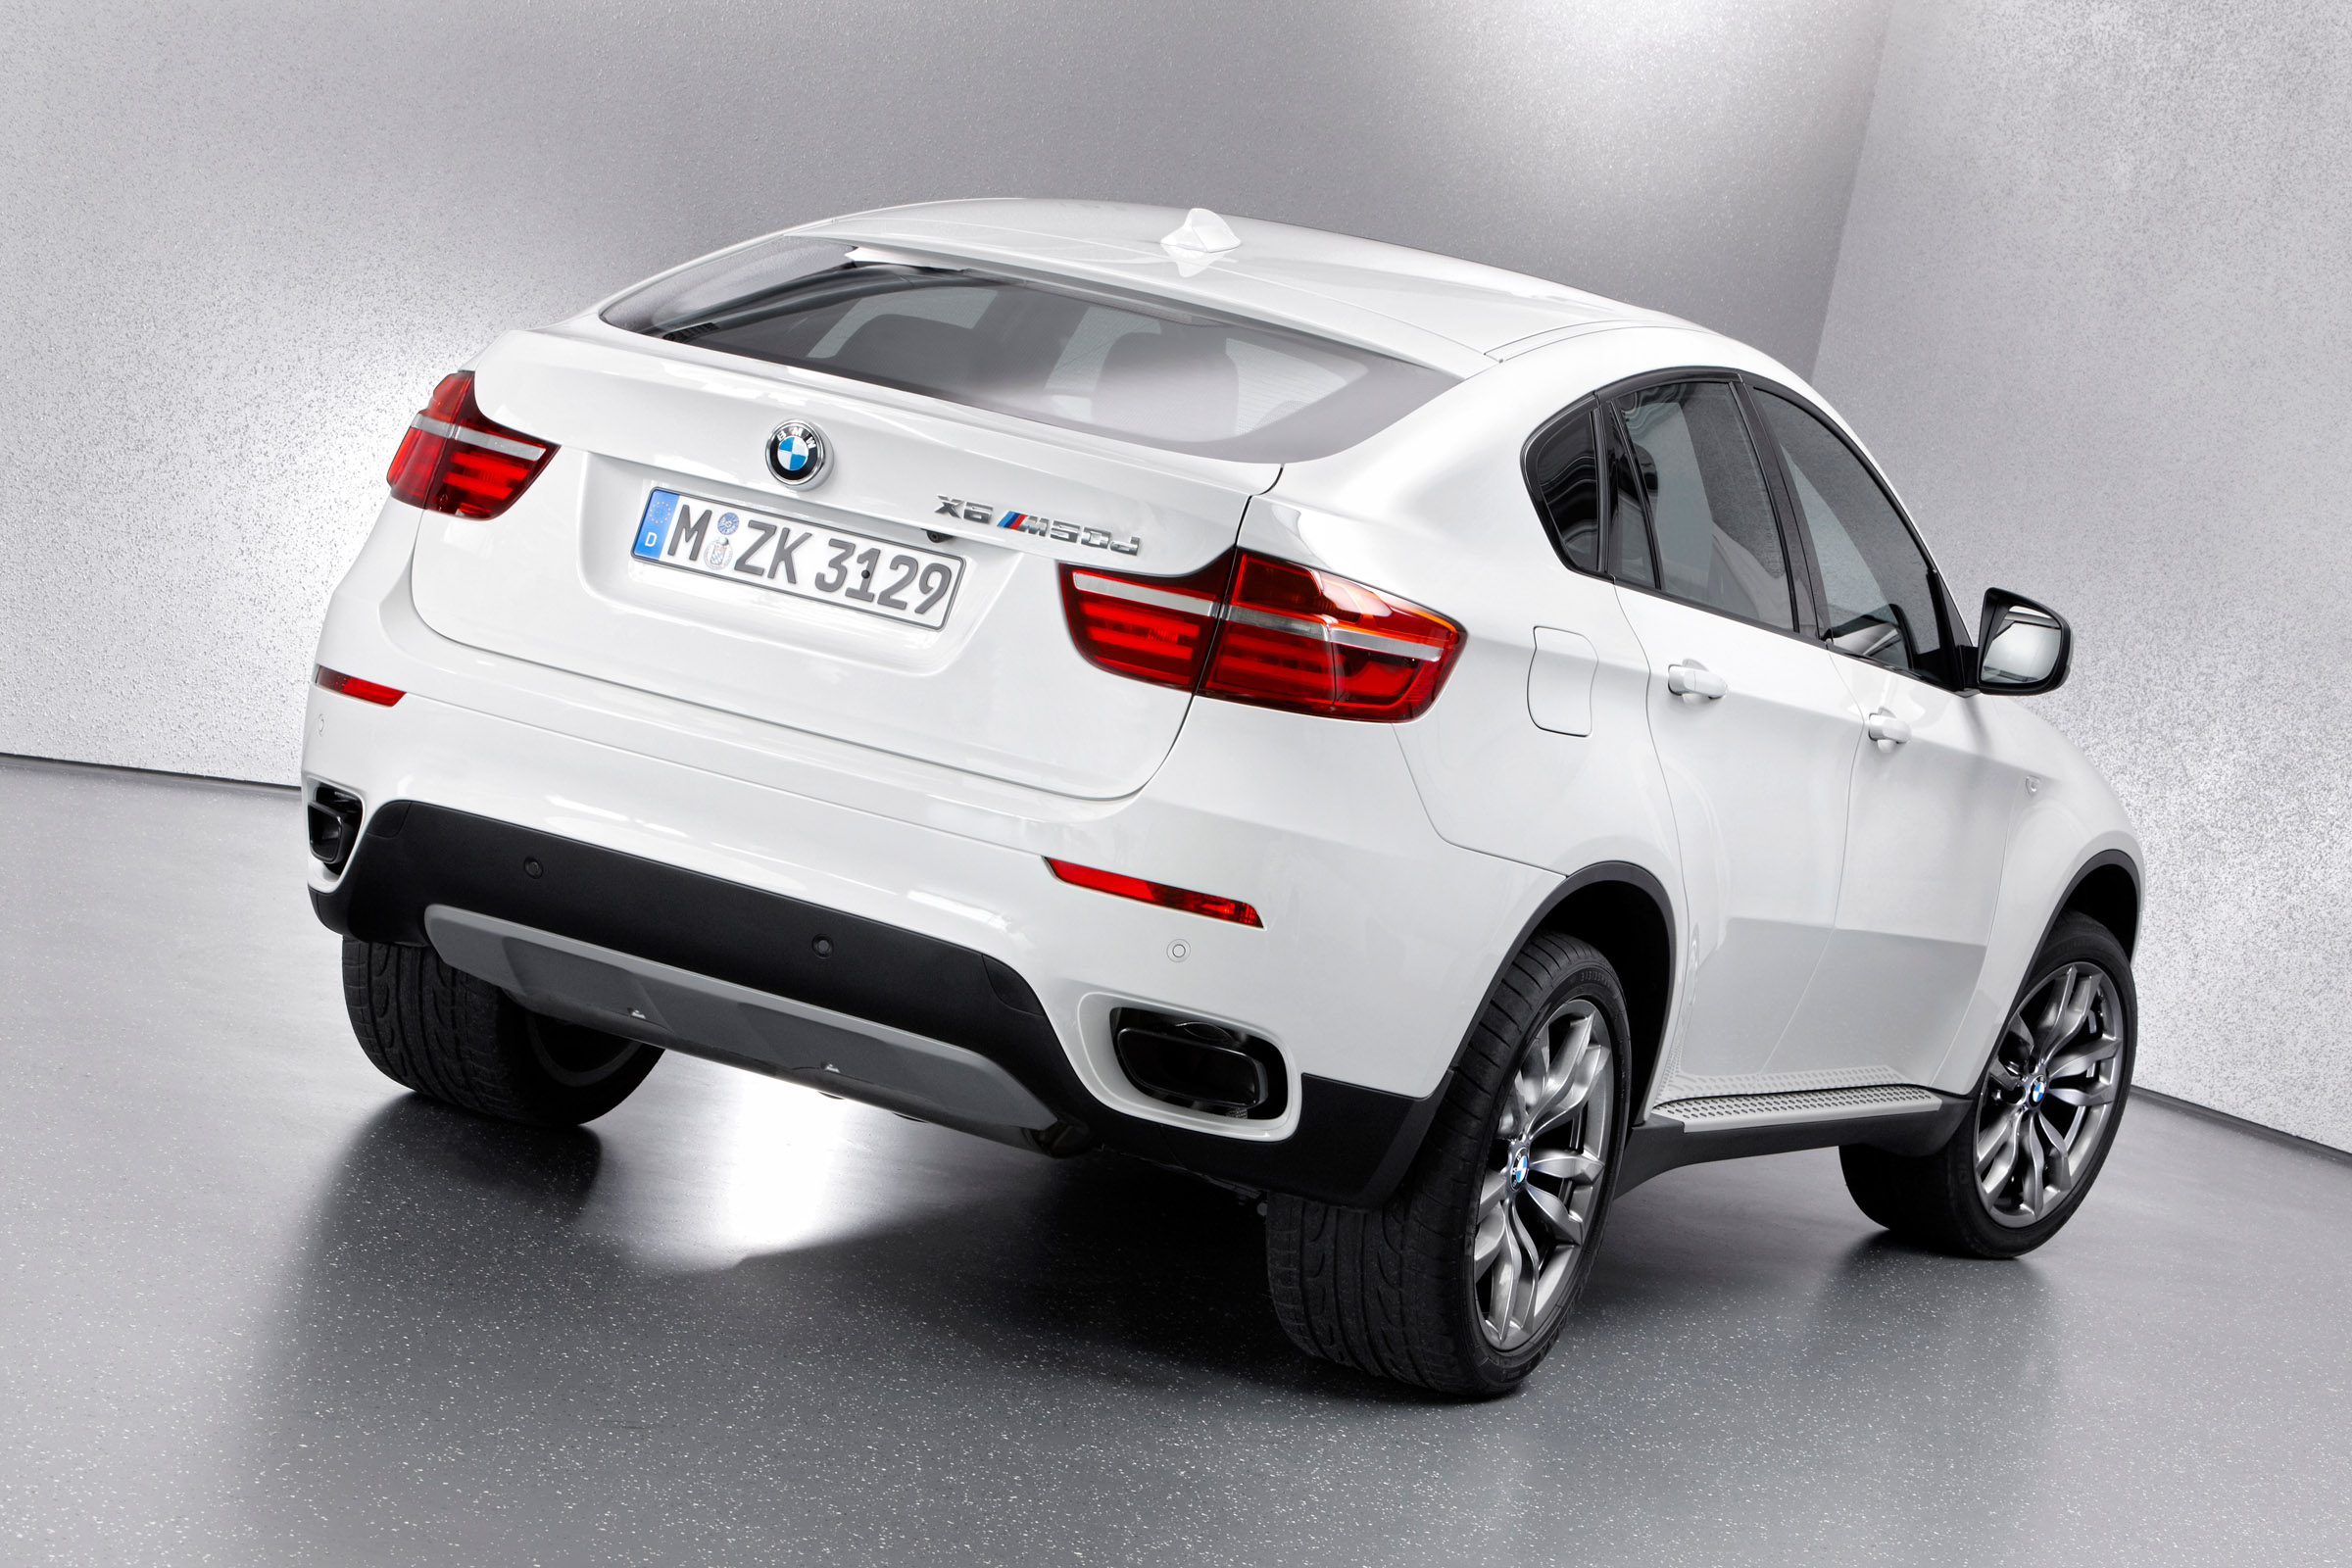 2012 Bmw X6 M50d Picture 63826